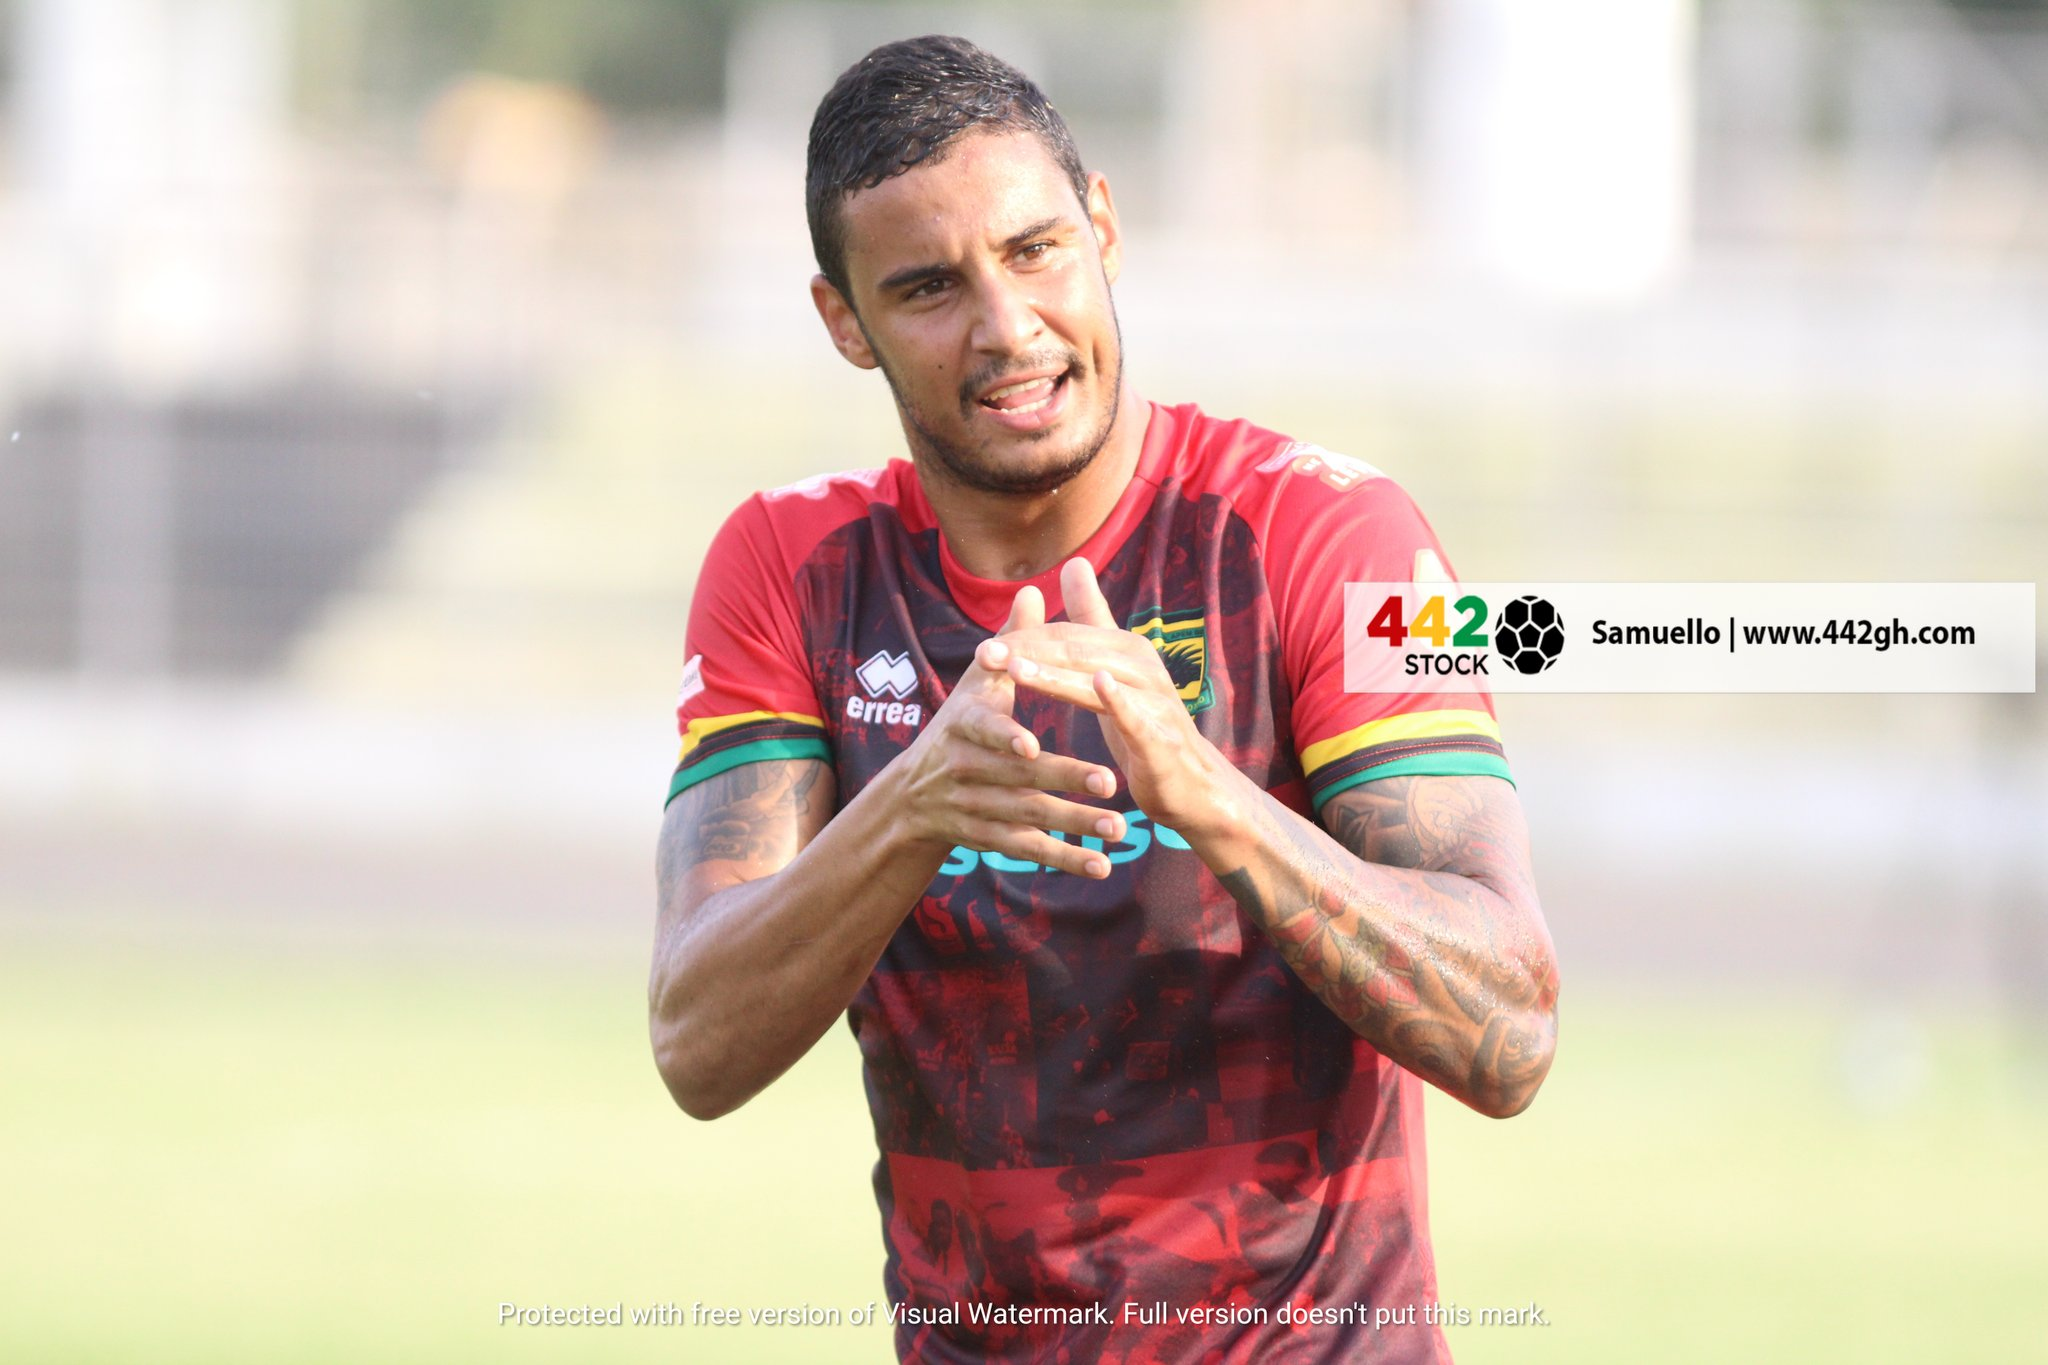 EyYqxI4WYAUvJt9?format=jpg&name=large - PHOTOS: Brazilian Striker Michael Vinicius Scores First Asante Kotoko goal On His Debut game against Bechem United